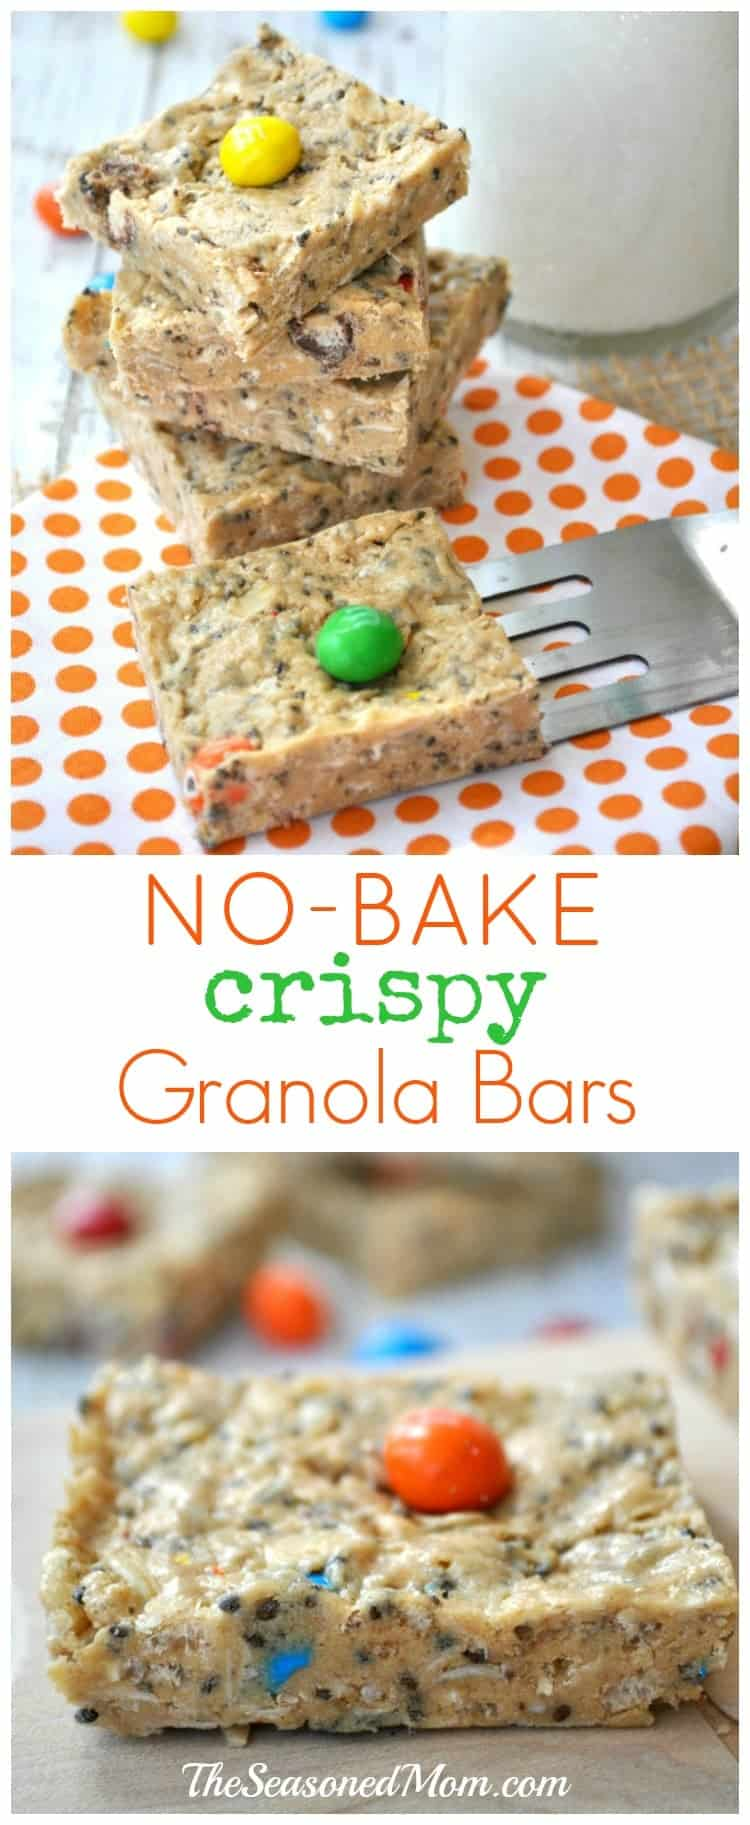 Healthy No-Bake Crispy Granola Bars